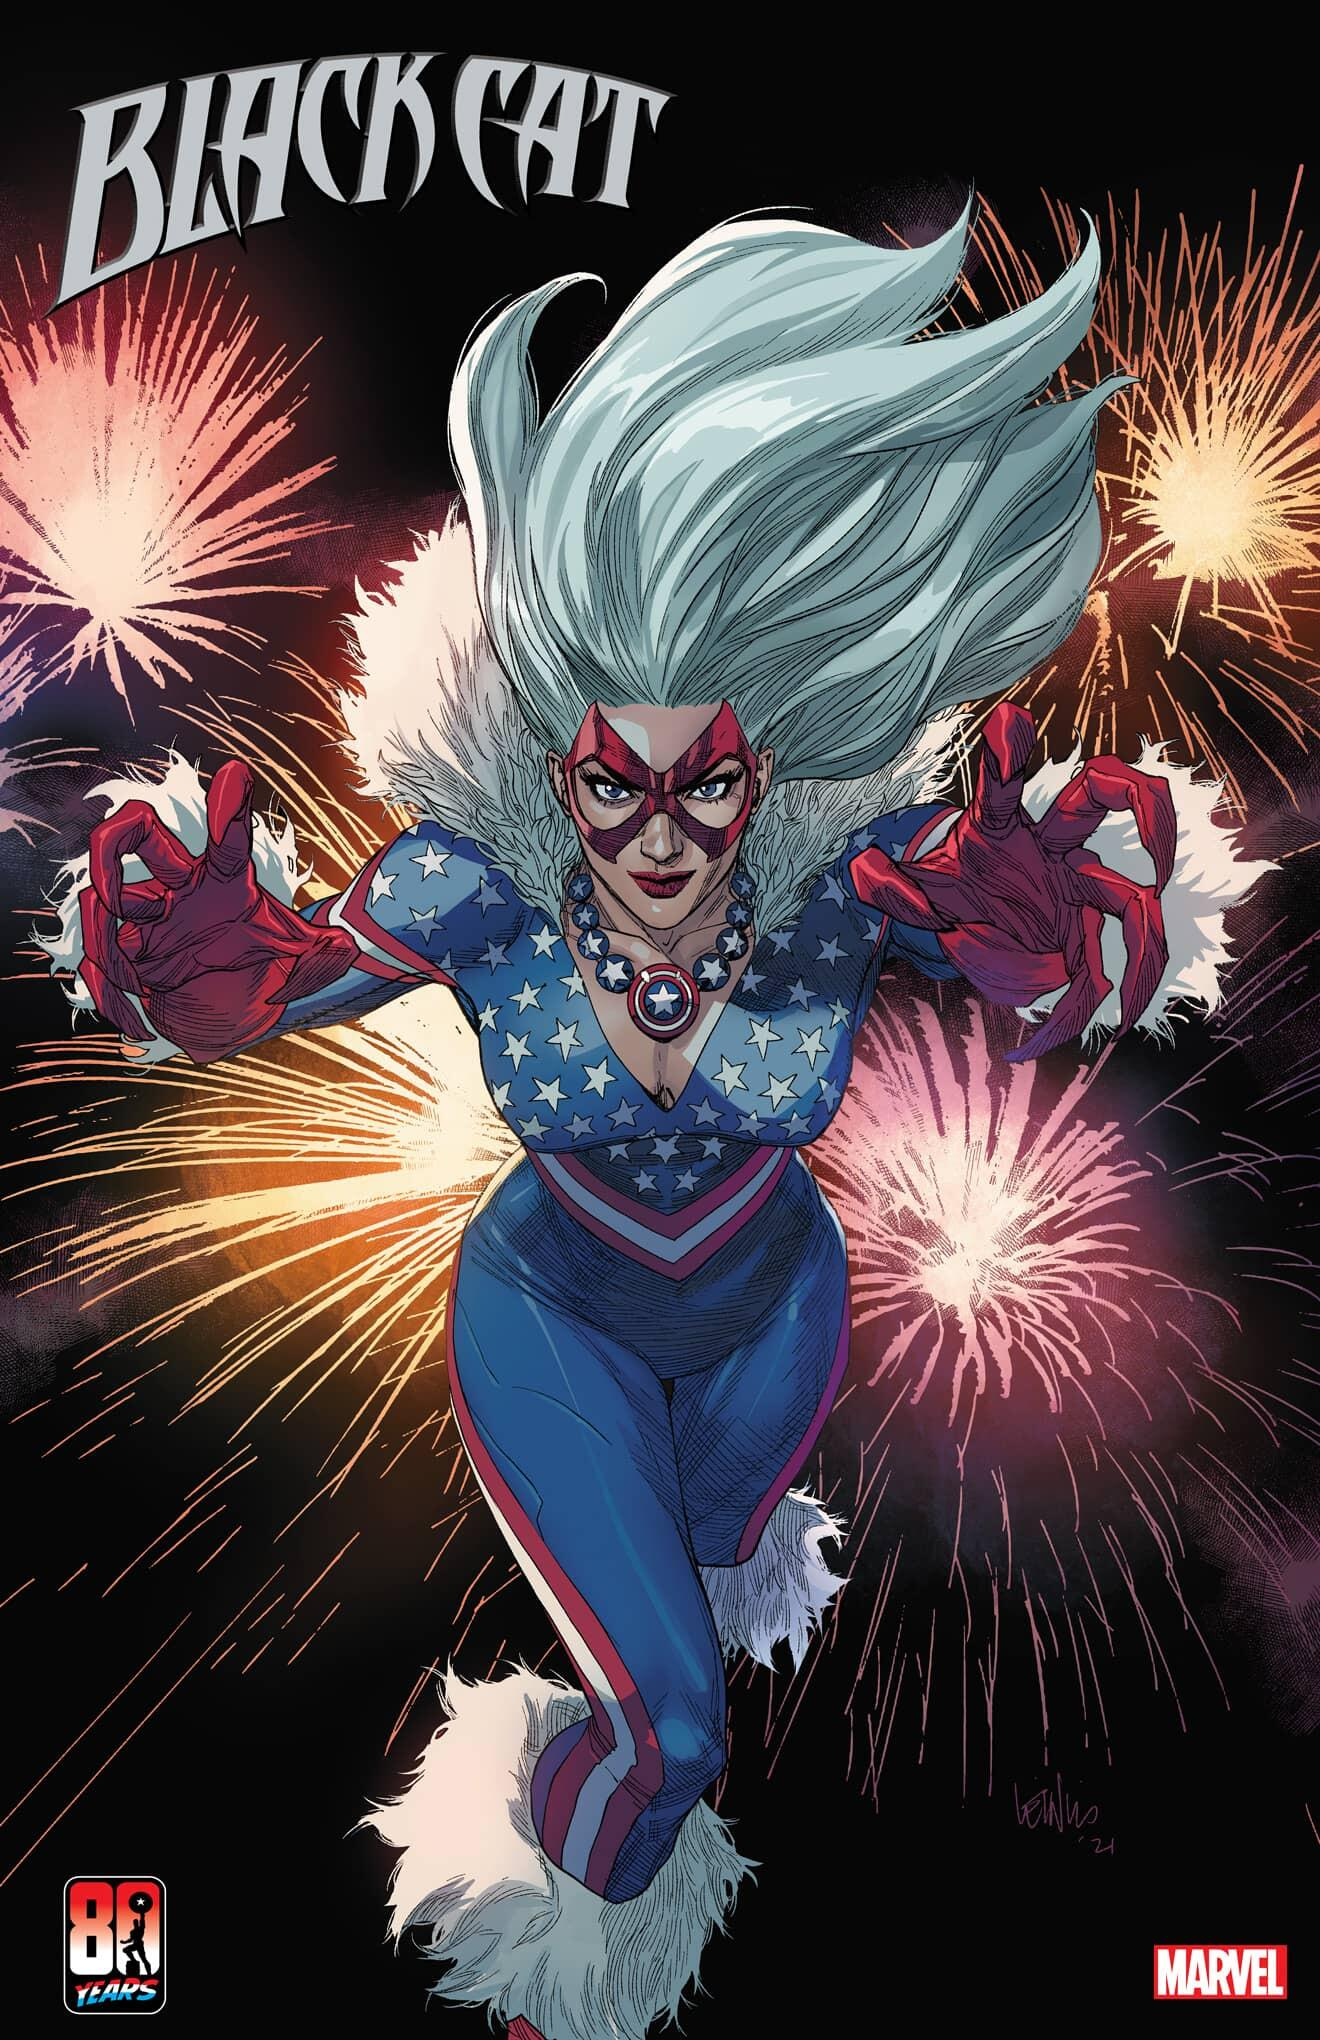 BLACK CAT #8 CAPTAIN AMERICA 80TH VARIANT COVER by LEINIL FRANCIS YU & SUNNY GHO